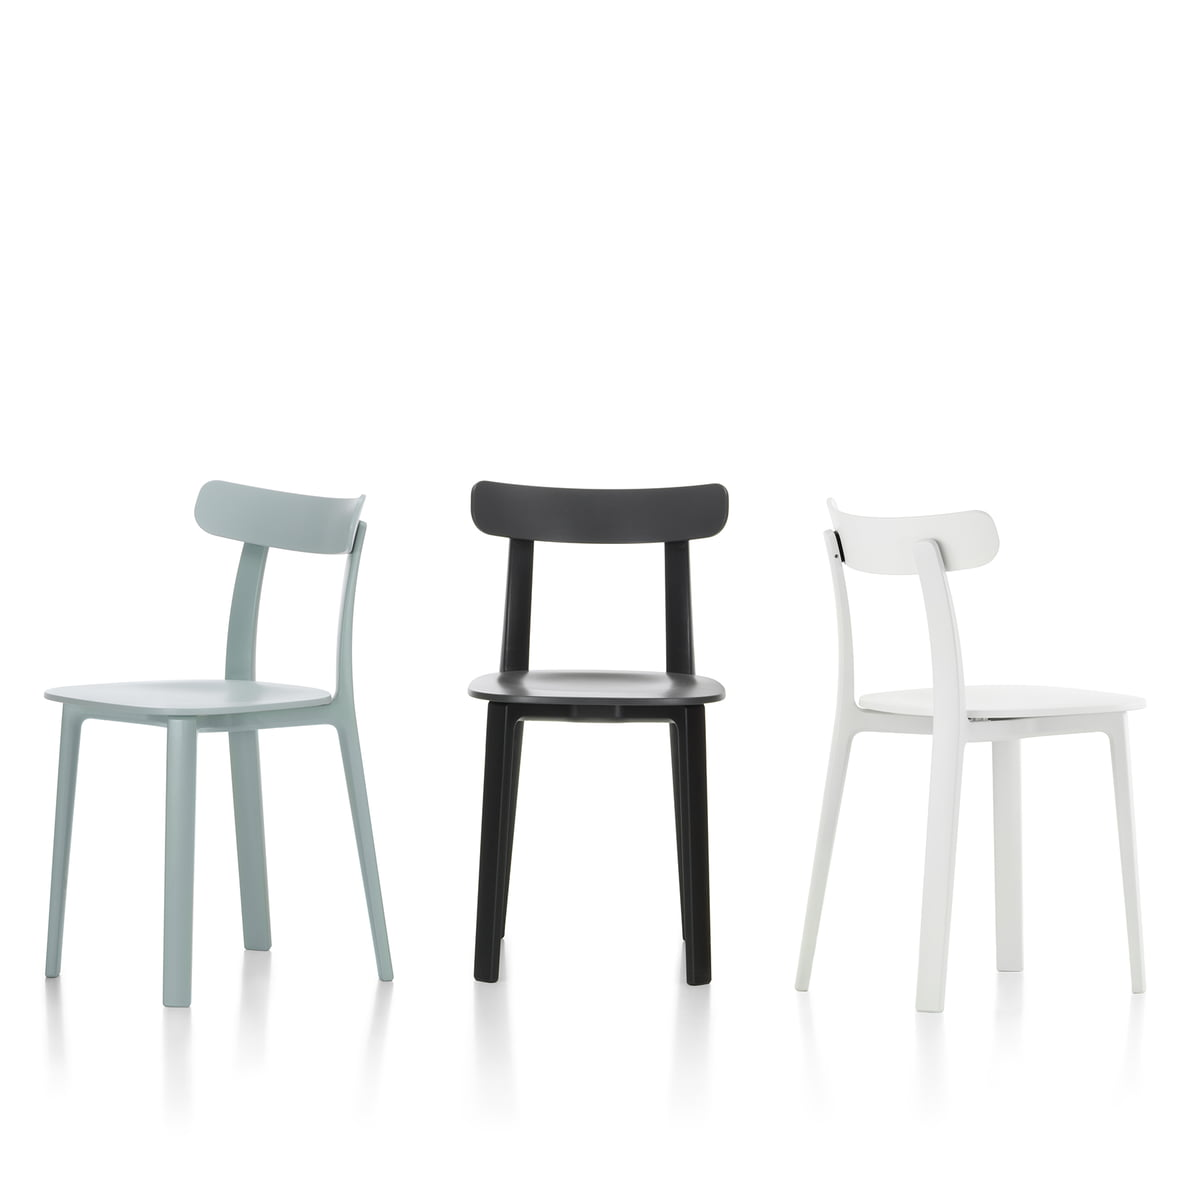 purchase the all plastic chair by vitra - the all plastic chair by vitra in various colours